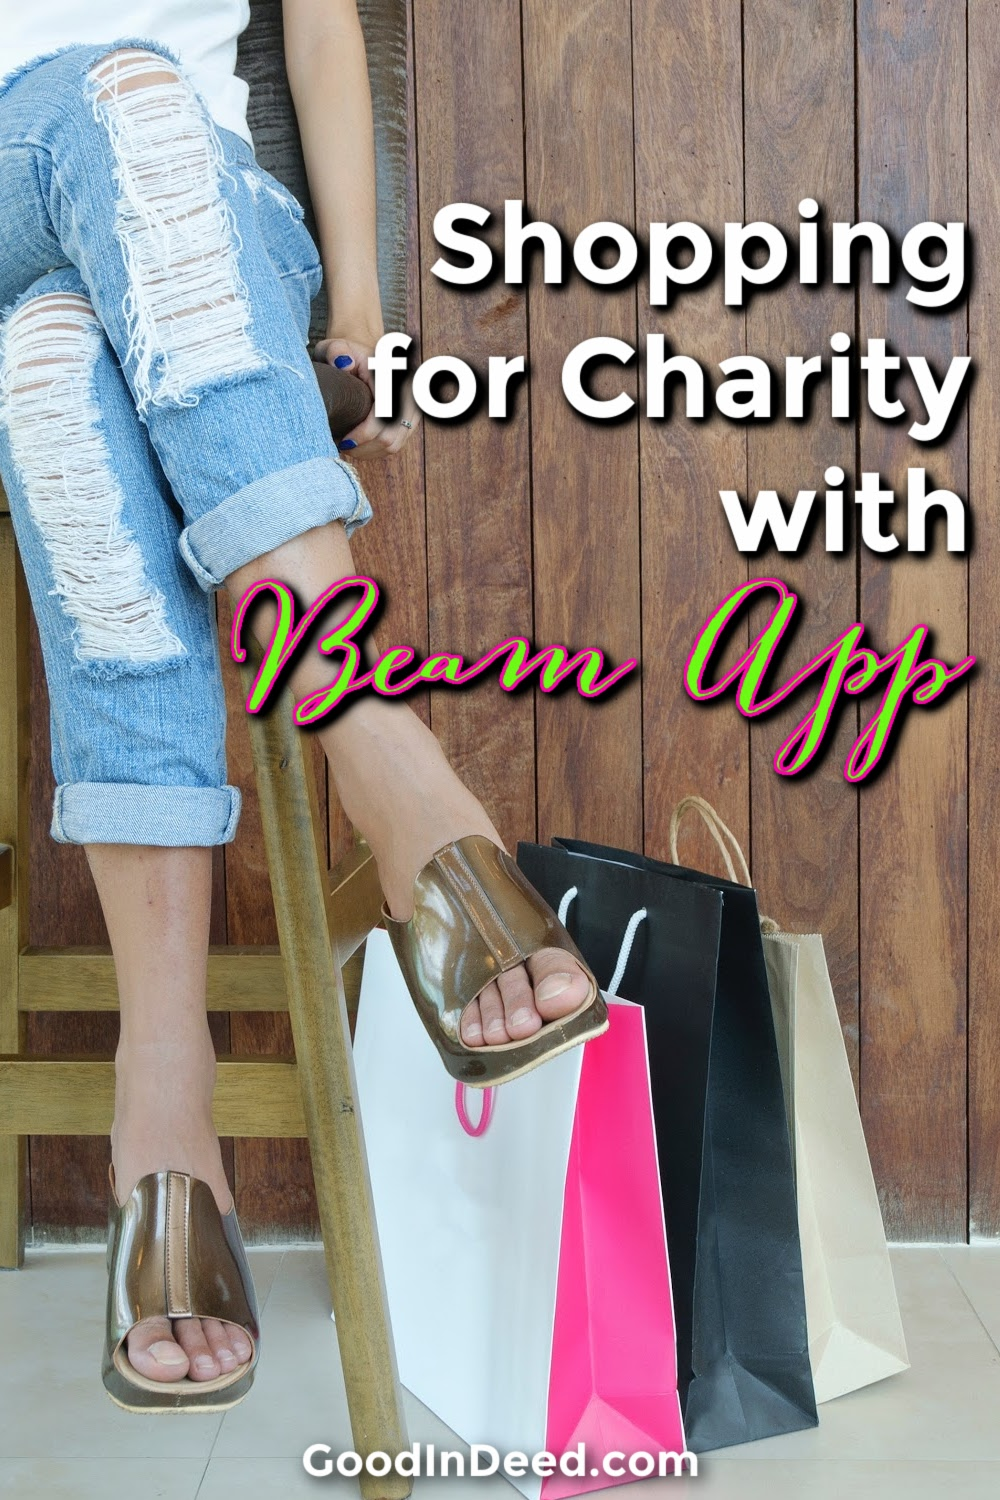 The Beam app for charity allows you to turn everyday purchases into random acts of kindness with the click of a button.